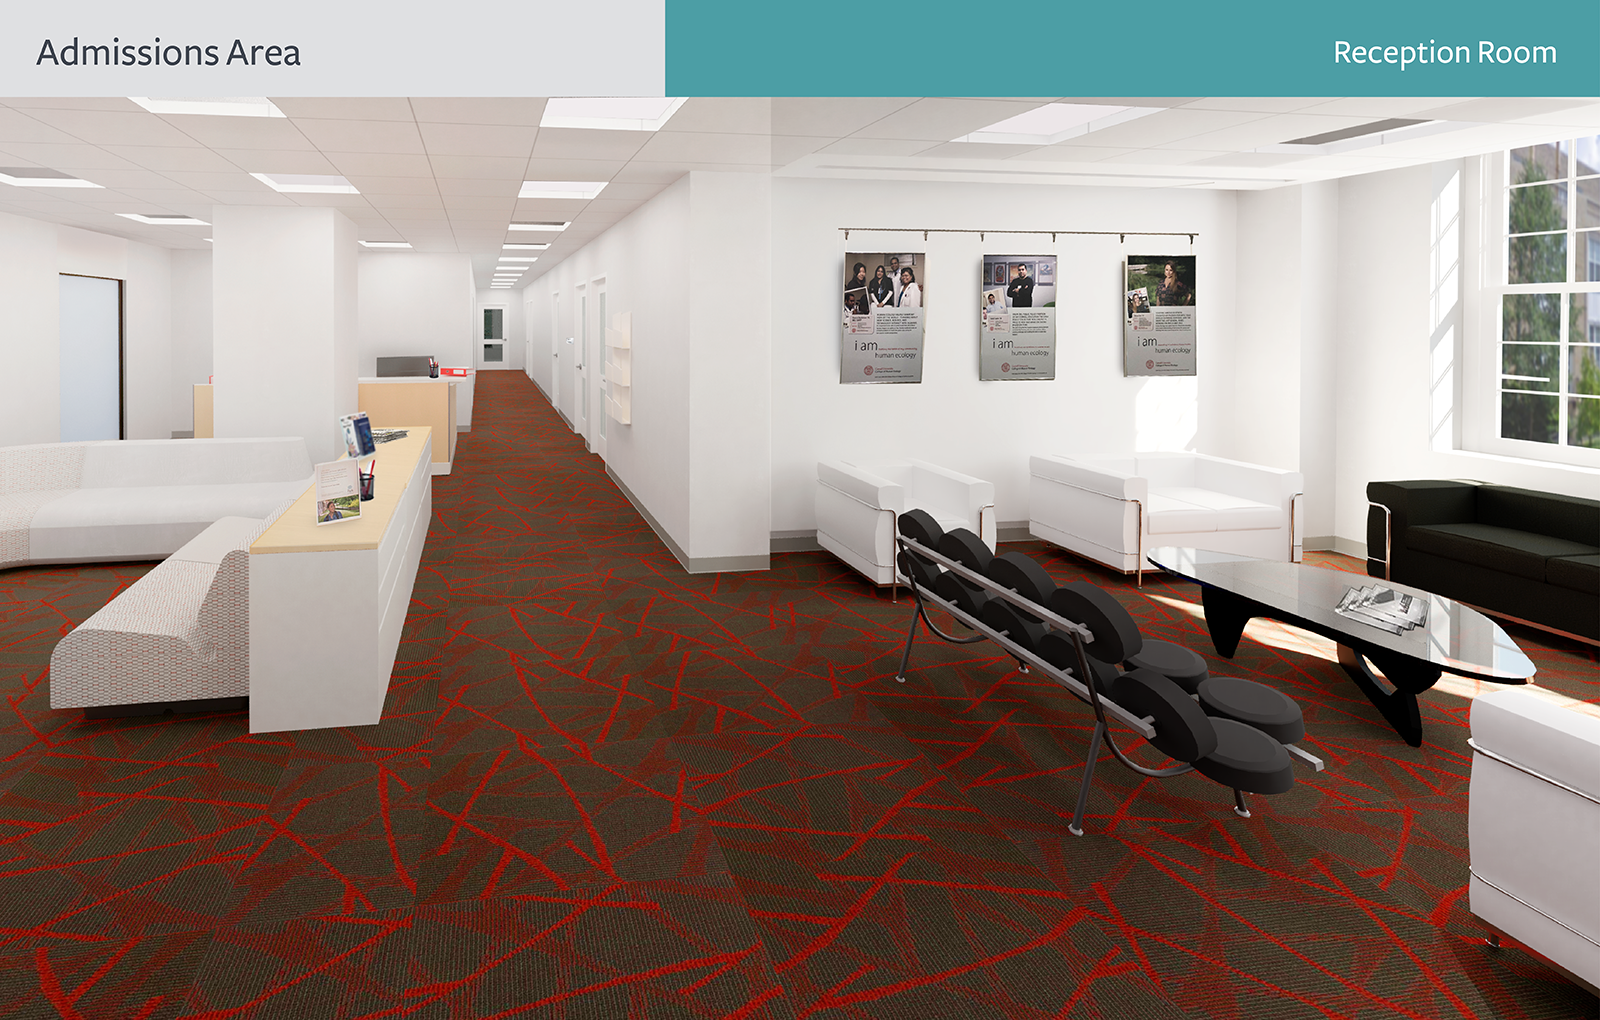 The rendering of Admissions Area, Reception Room